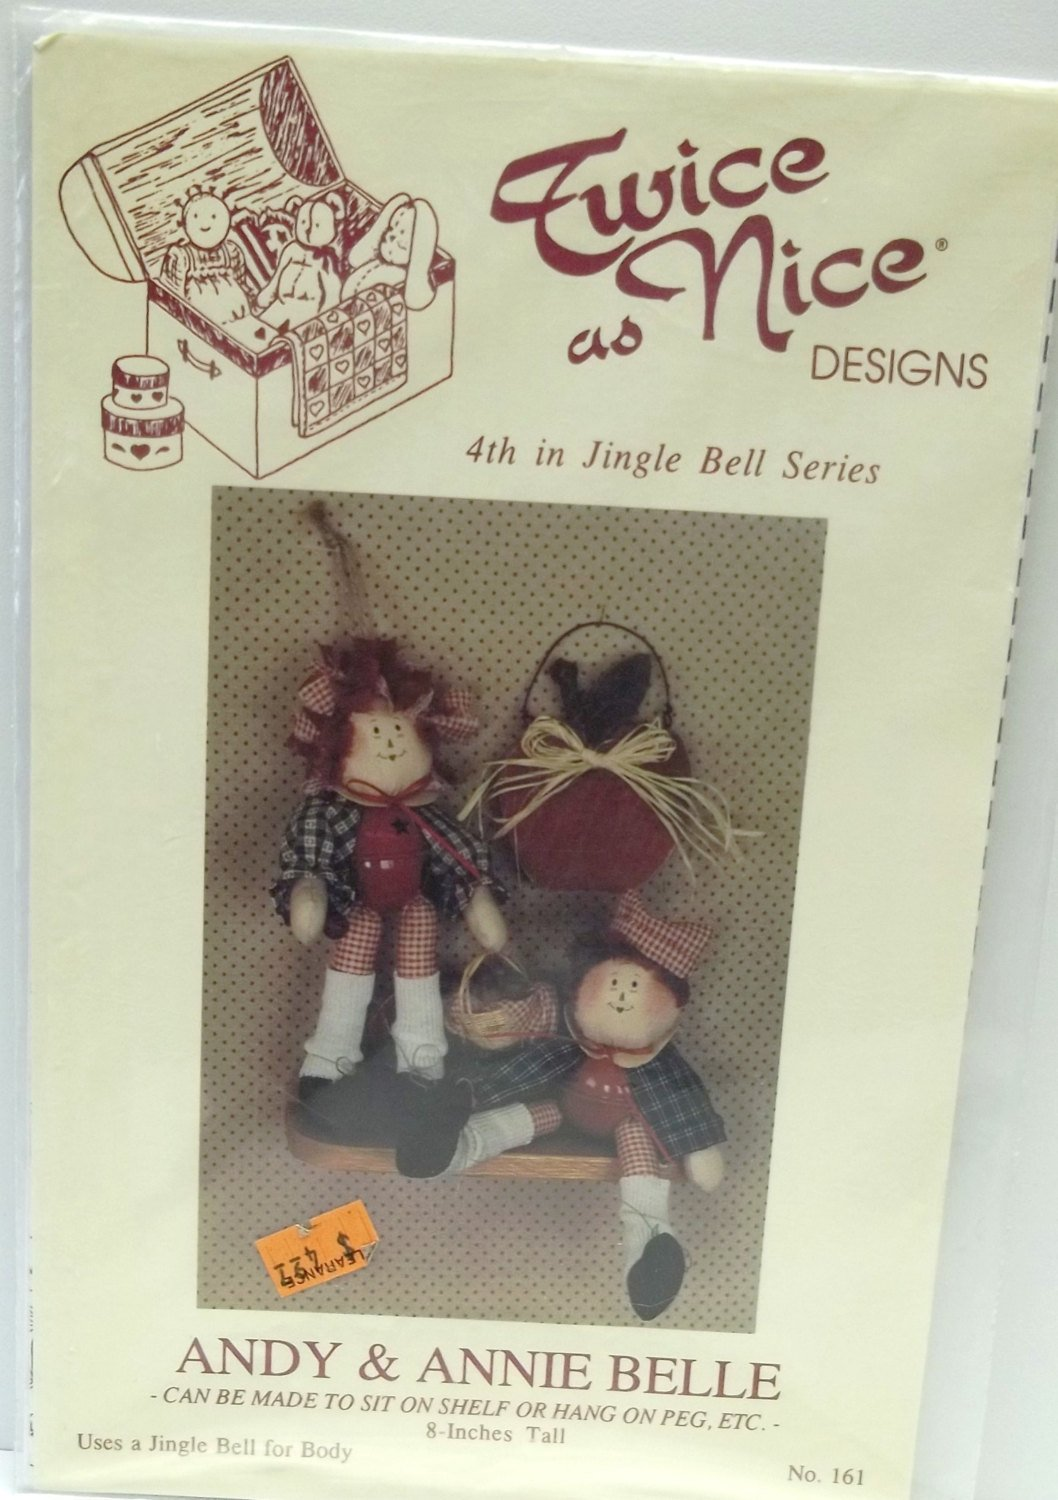 vintage dolls sewing pattern jingle bell series,vintage cloth dolls,cloth doll set,twice as nice design,no 161,Andy and Annie Belle dolls,,